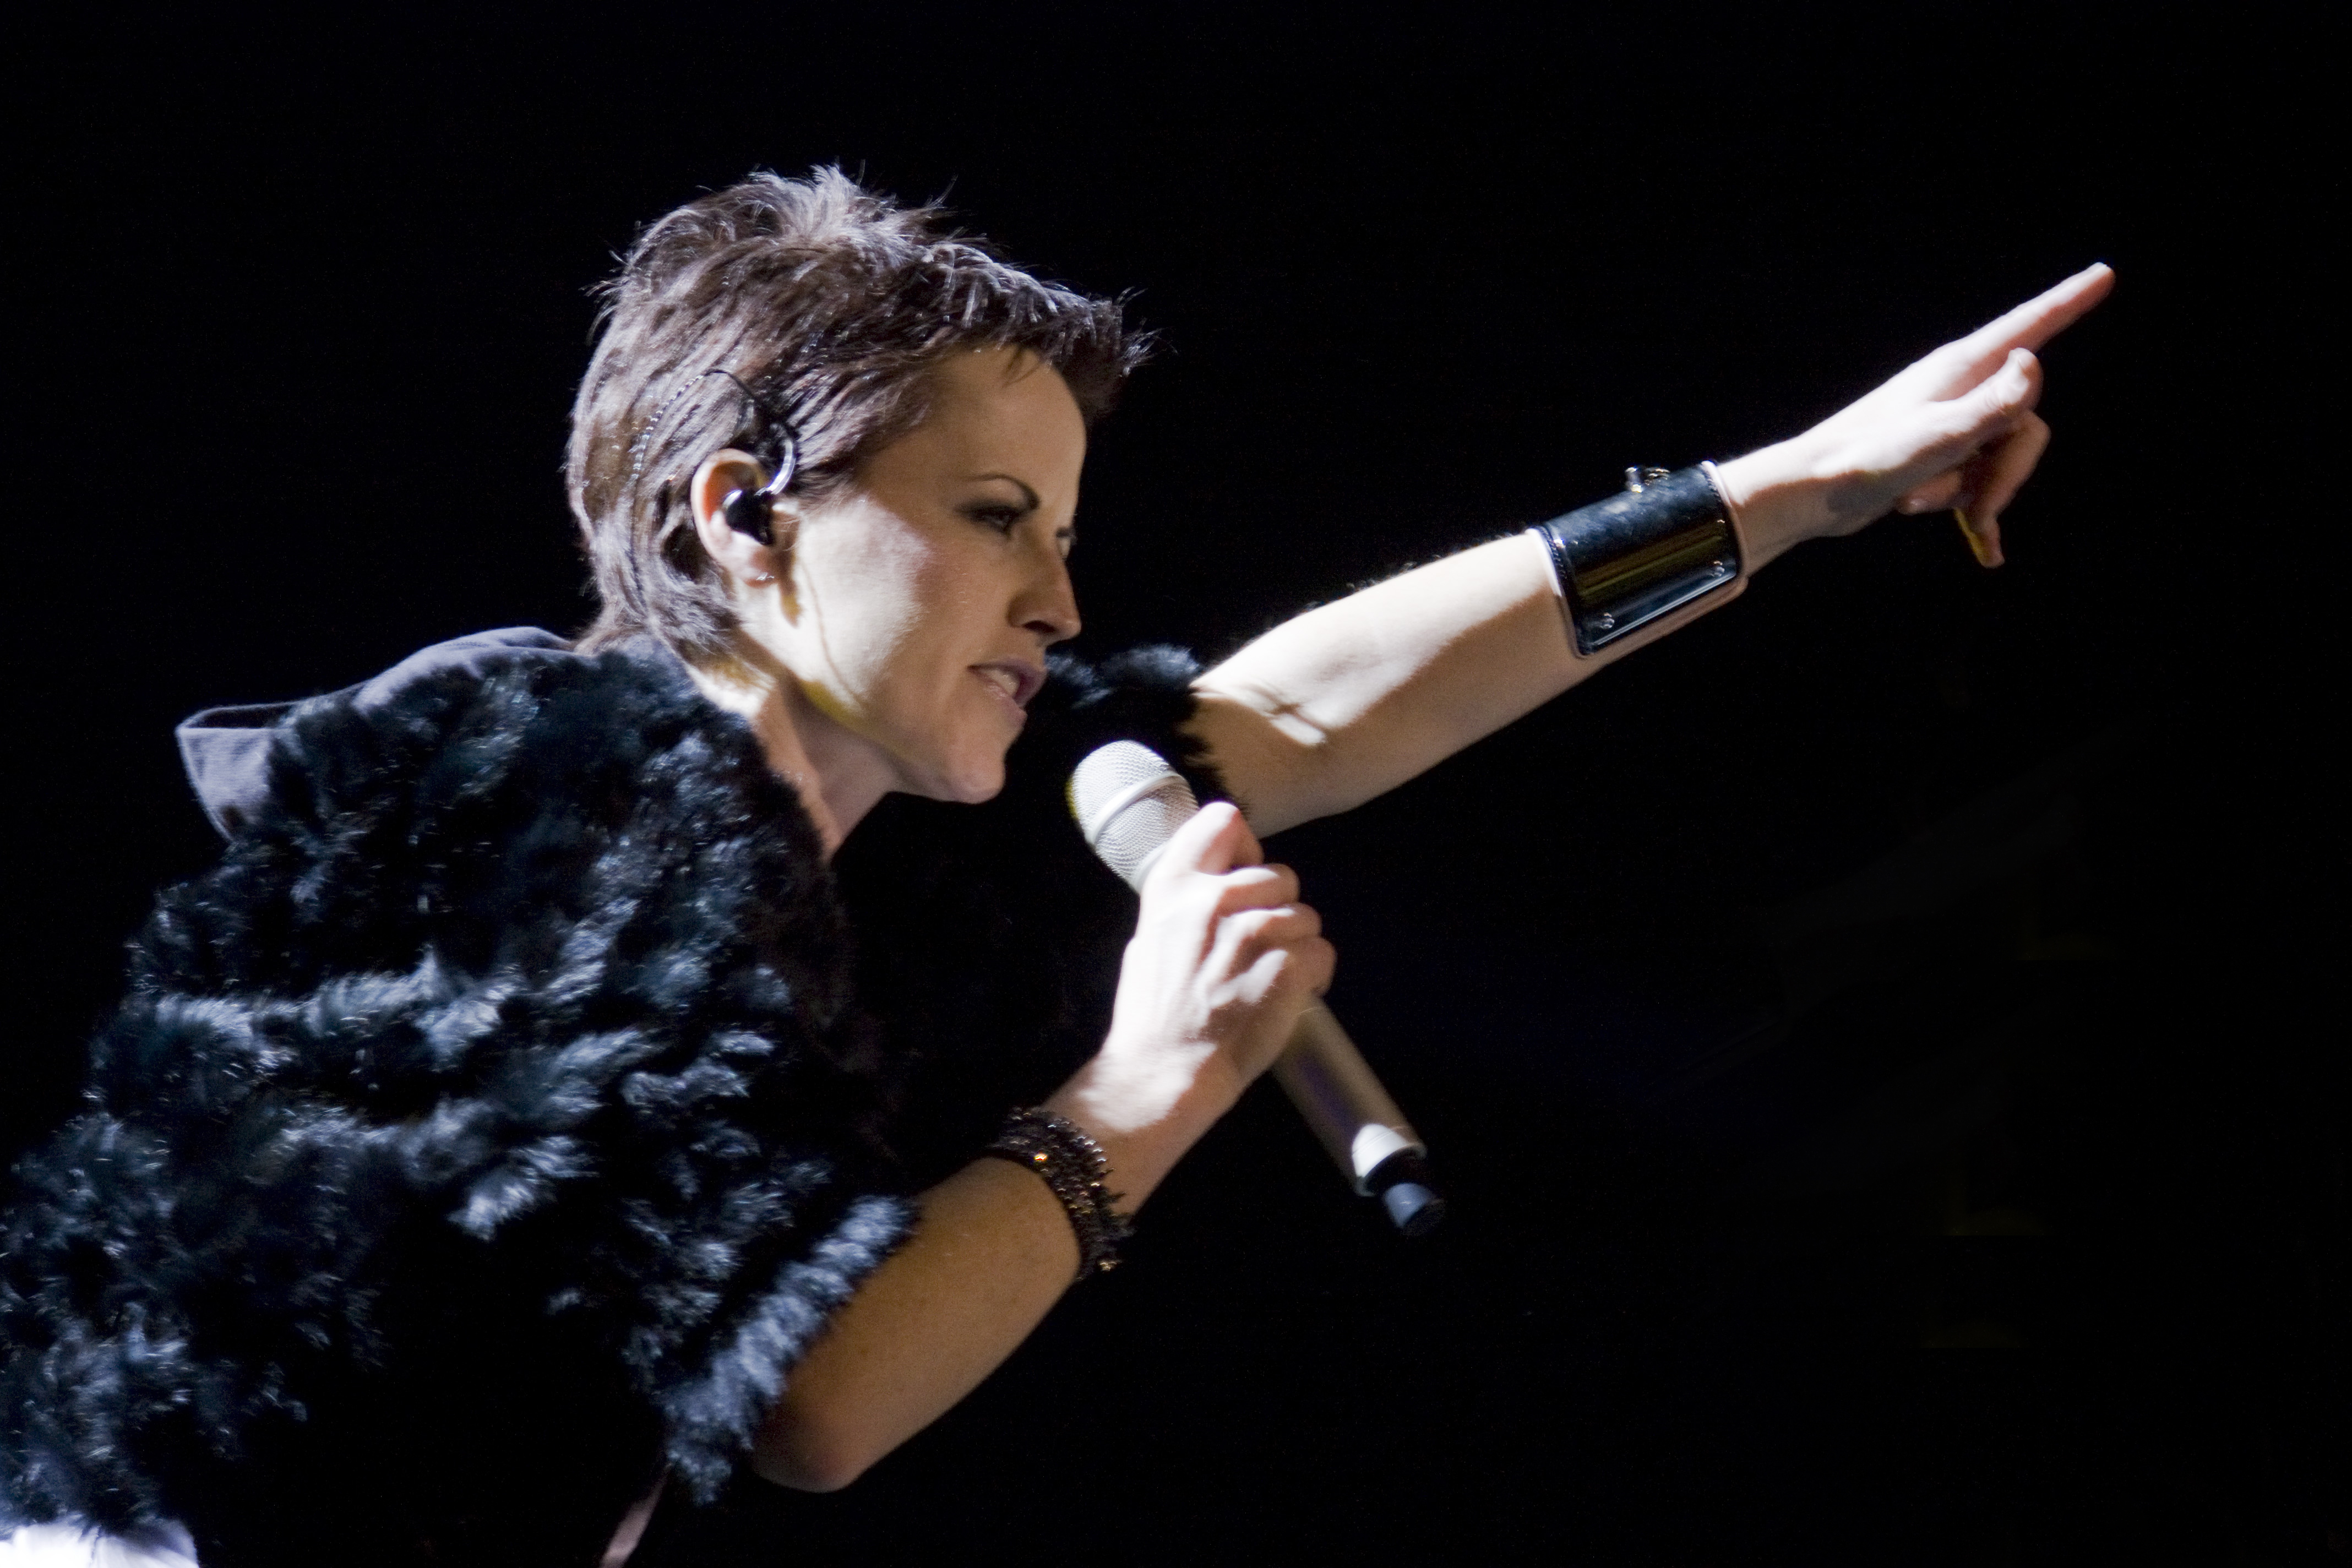 Delores O'Riordan with a microphone, pointing up, during a The Cranberries performance in Barcelona.